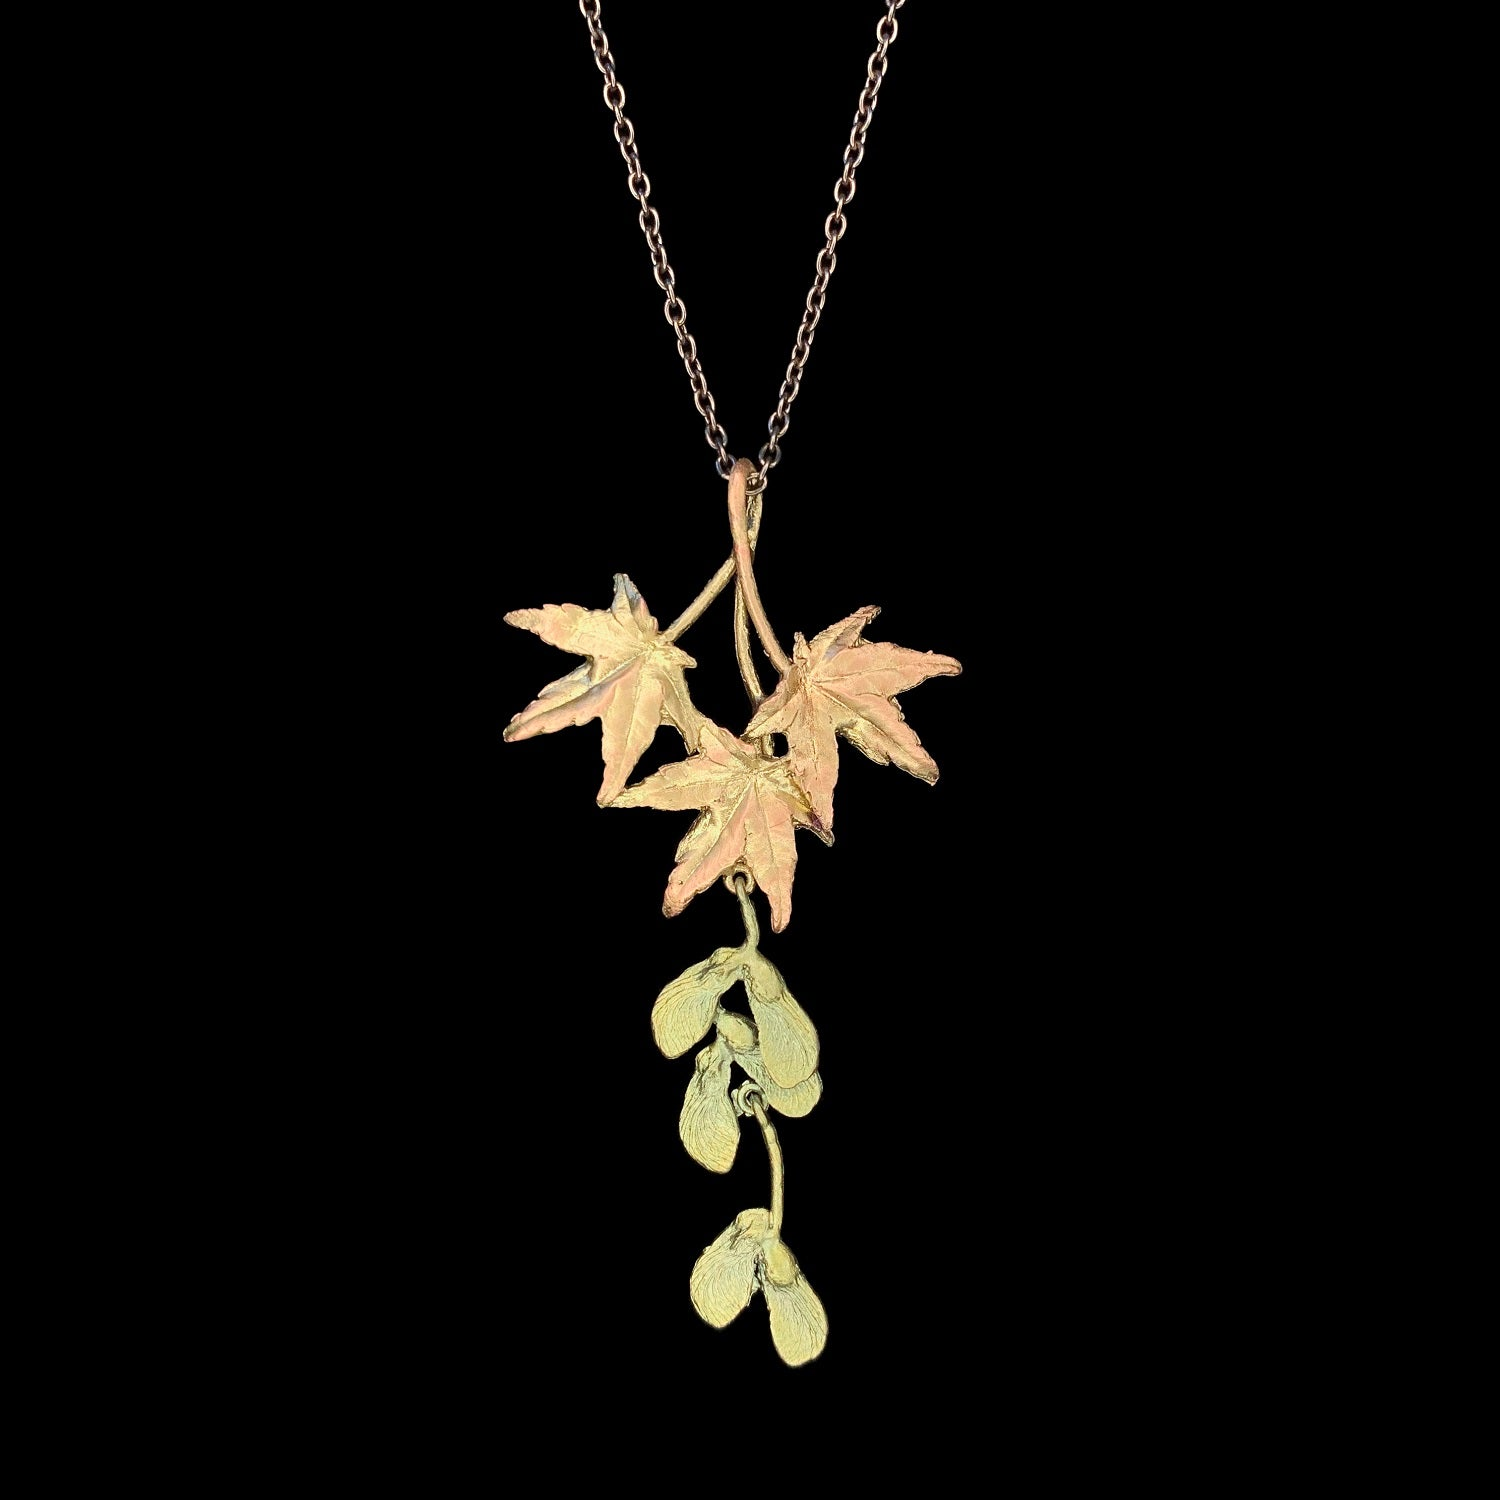 Japanese Maple Pendant - Leaf Drop